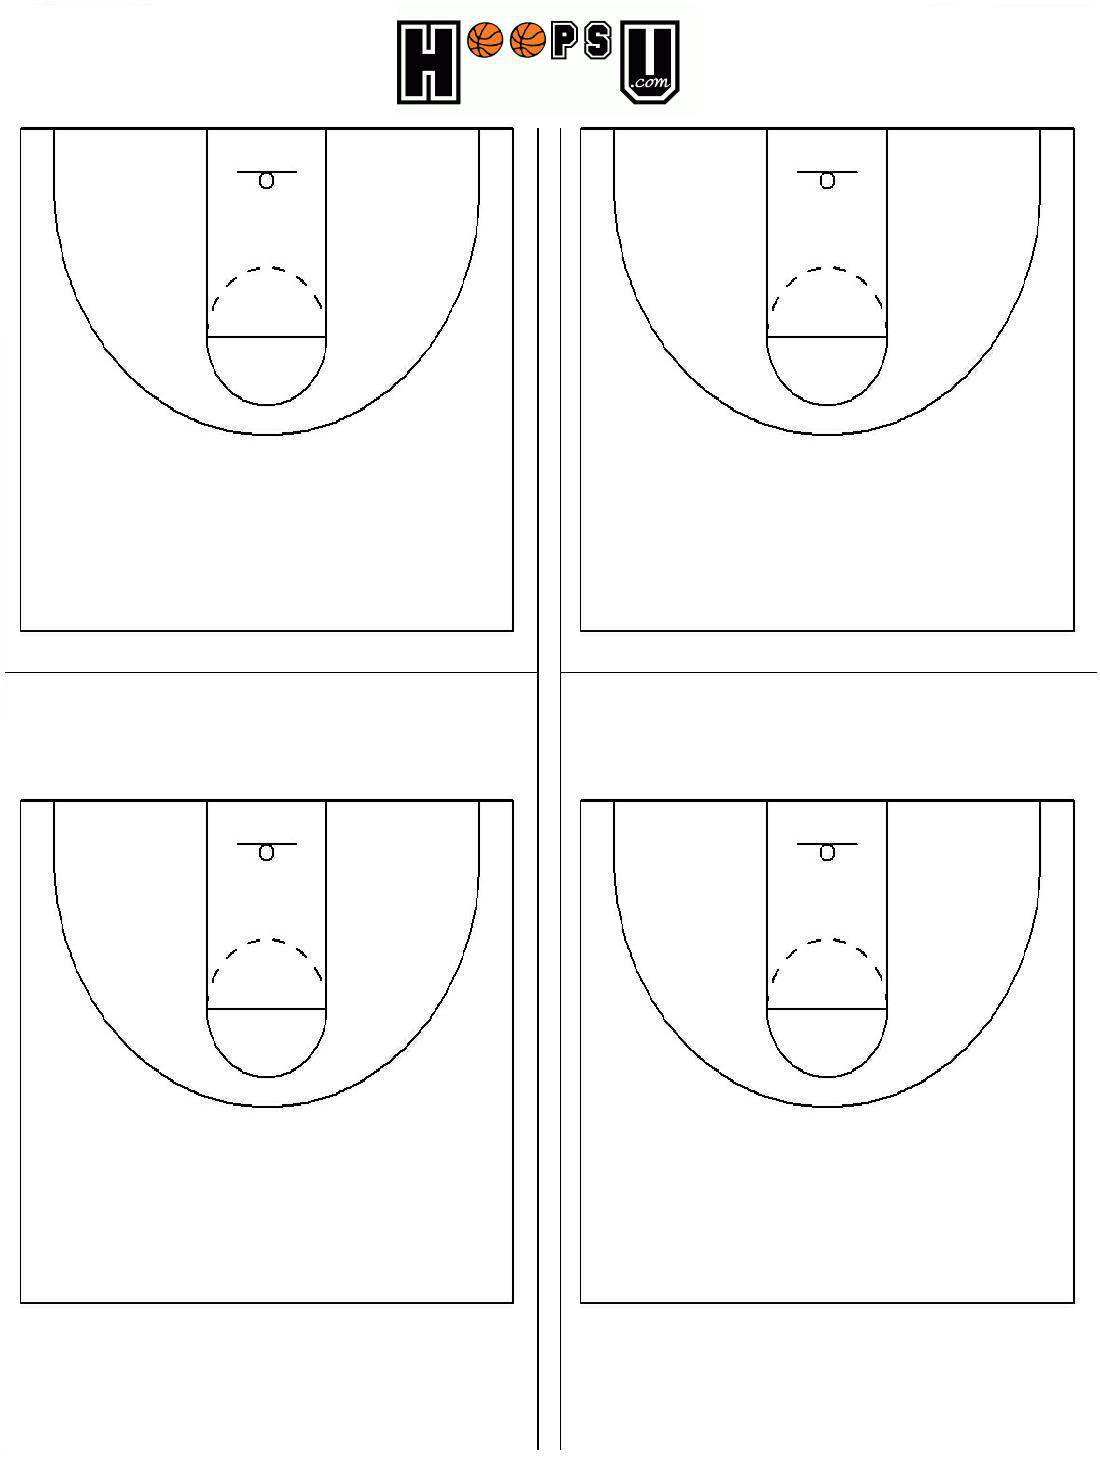 Halfcourt Basketball Diagram : halfcourt, basketball, diagram, Basketball, Court, Dimensions, Diagrams, Striping